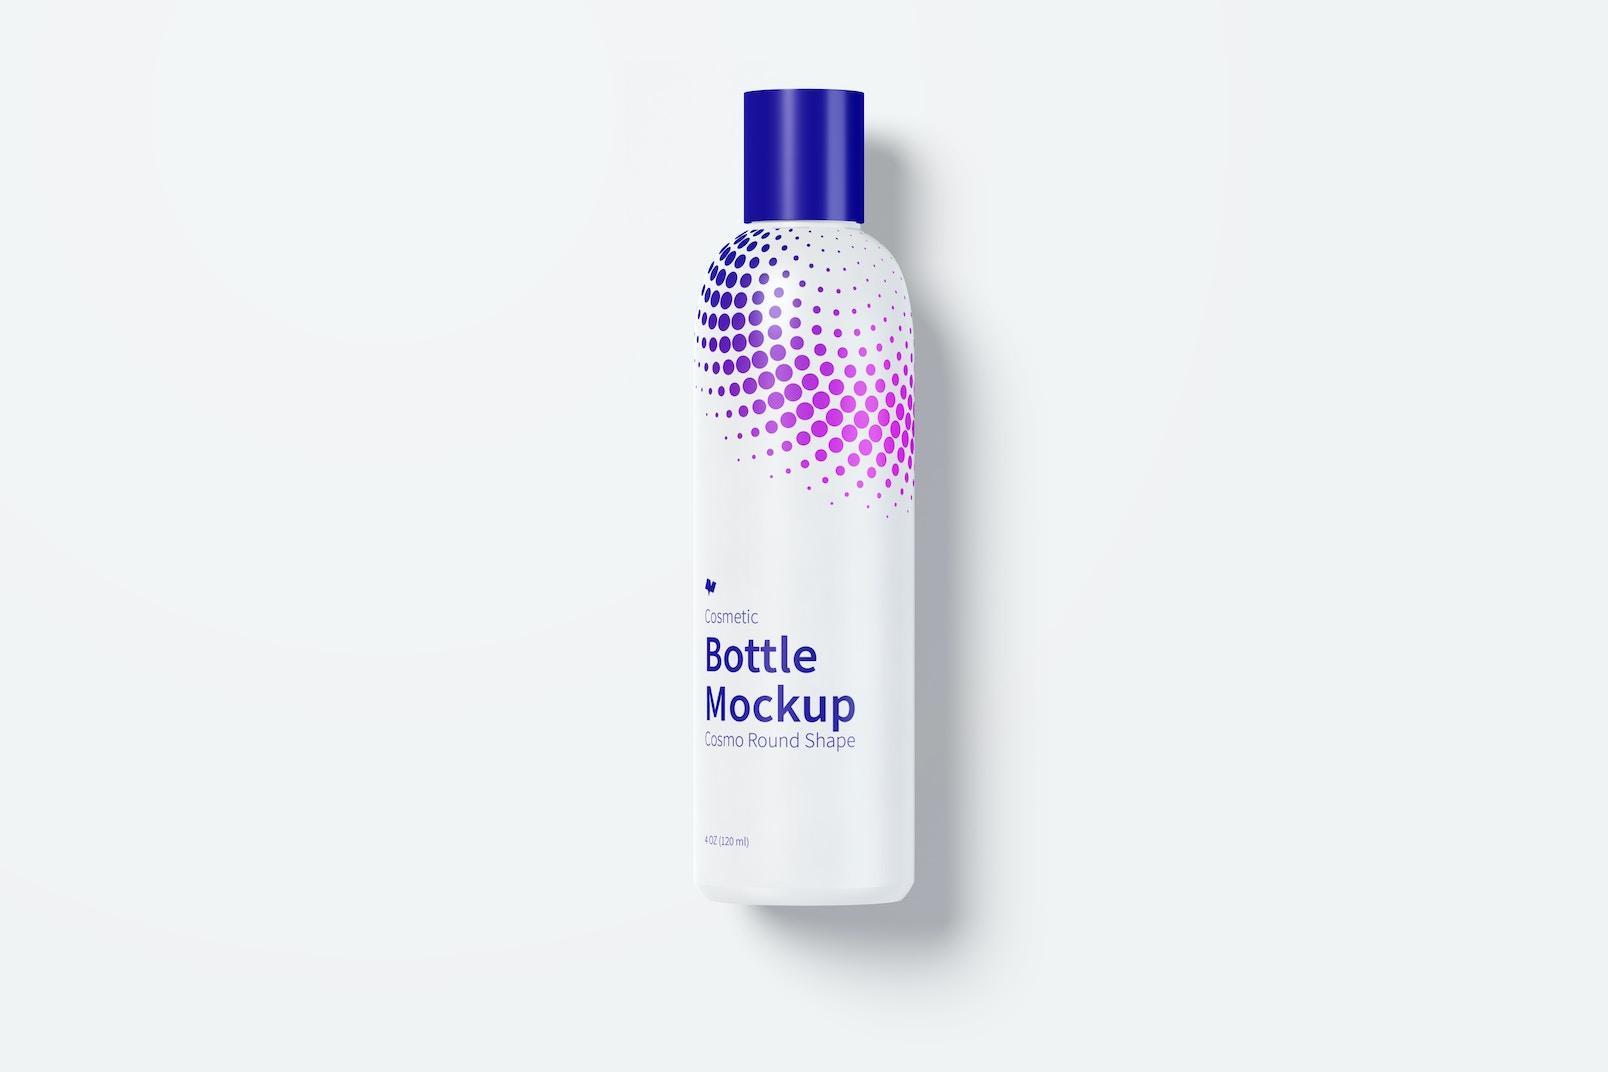 4 oz / 120 ml Cosmo Round Shape Cosmetic Bottle Mockup with Disc Cap in Front View